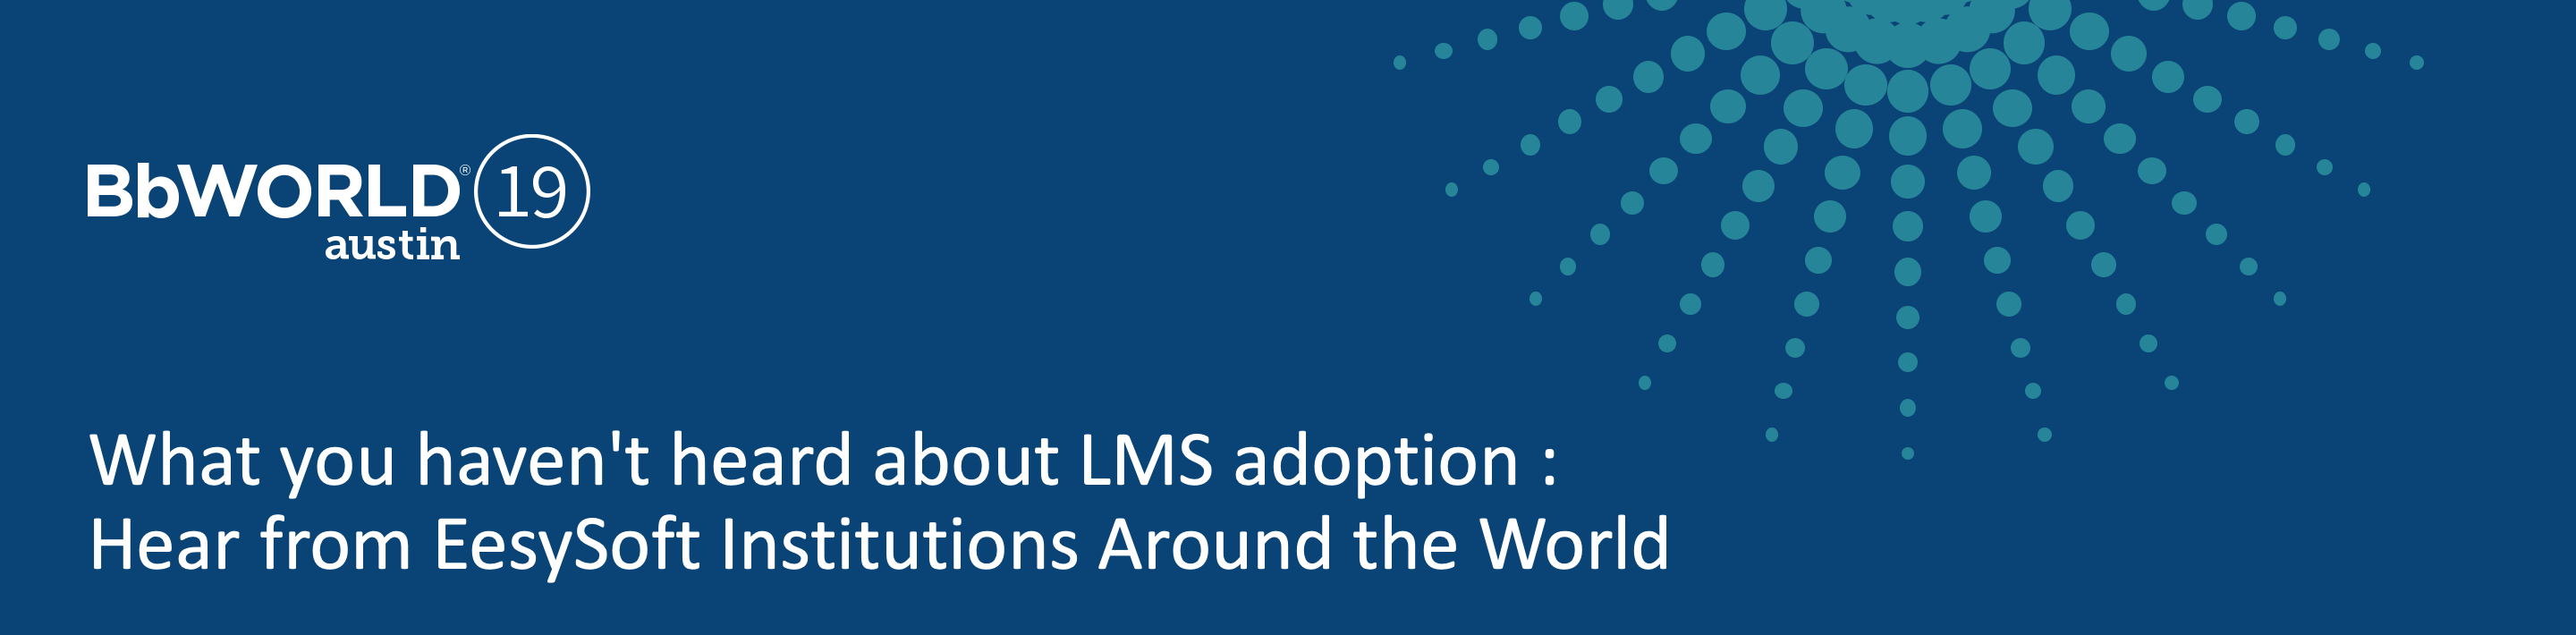 BbWorld 2019 Panelist Presentation: What you haven't heard about LMS adoption: Hear from EesySoft Institutions Around the World